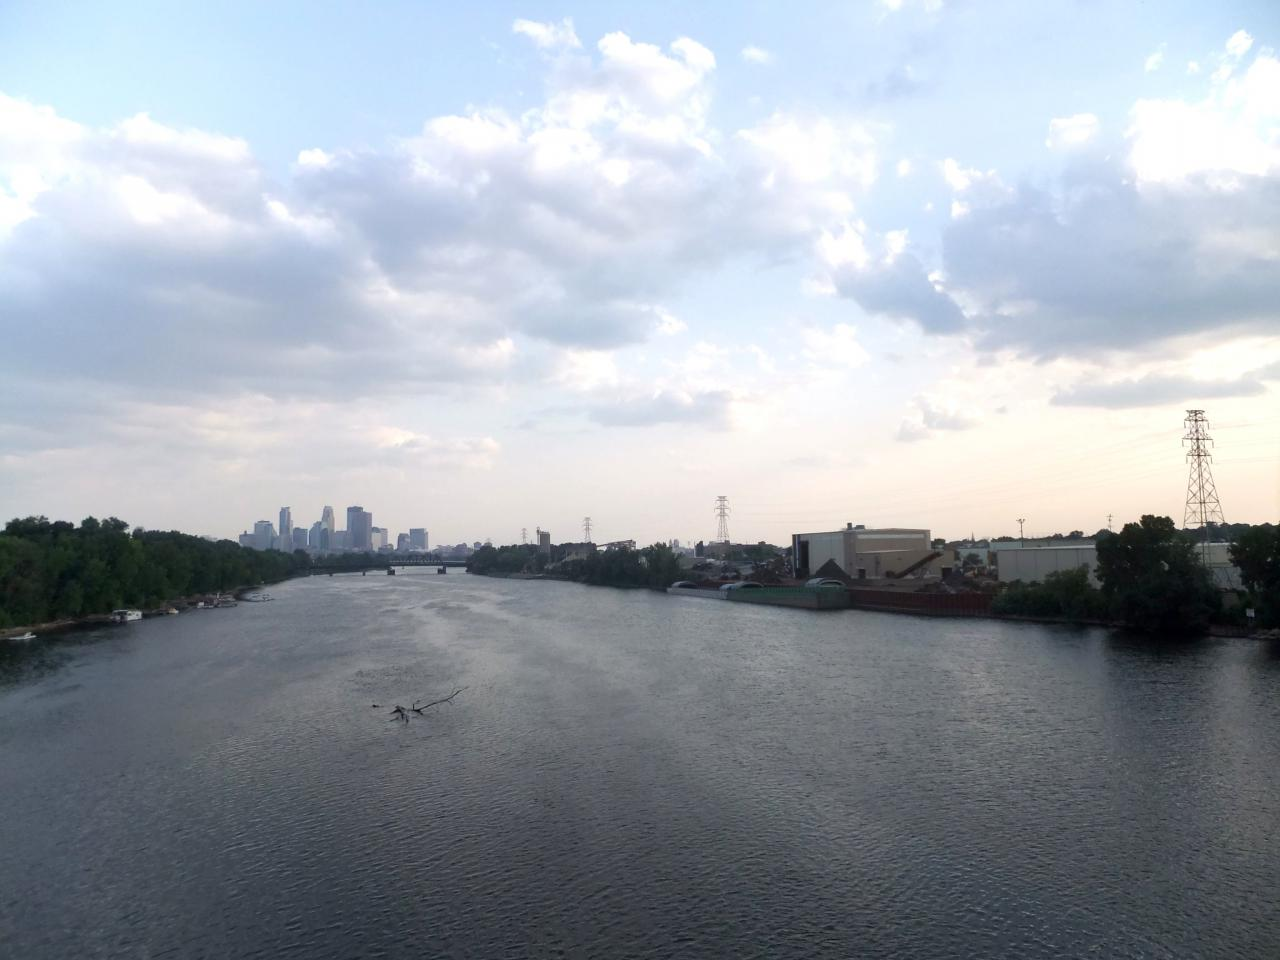 The view from the Lowry Bridge looking south to downtown Minneapolis.